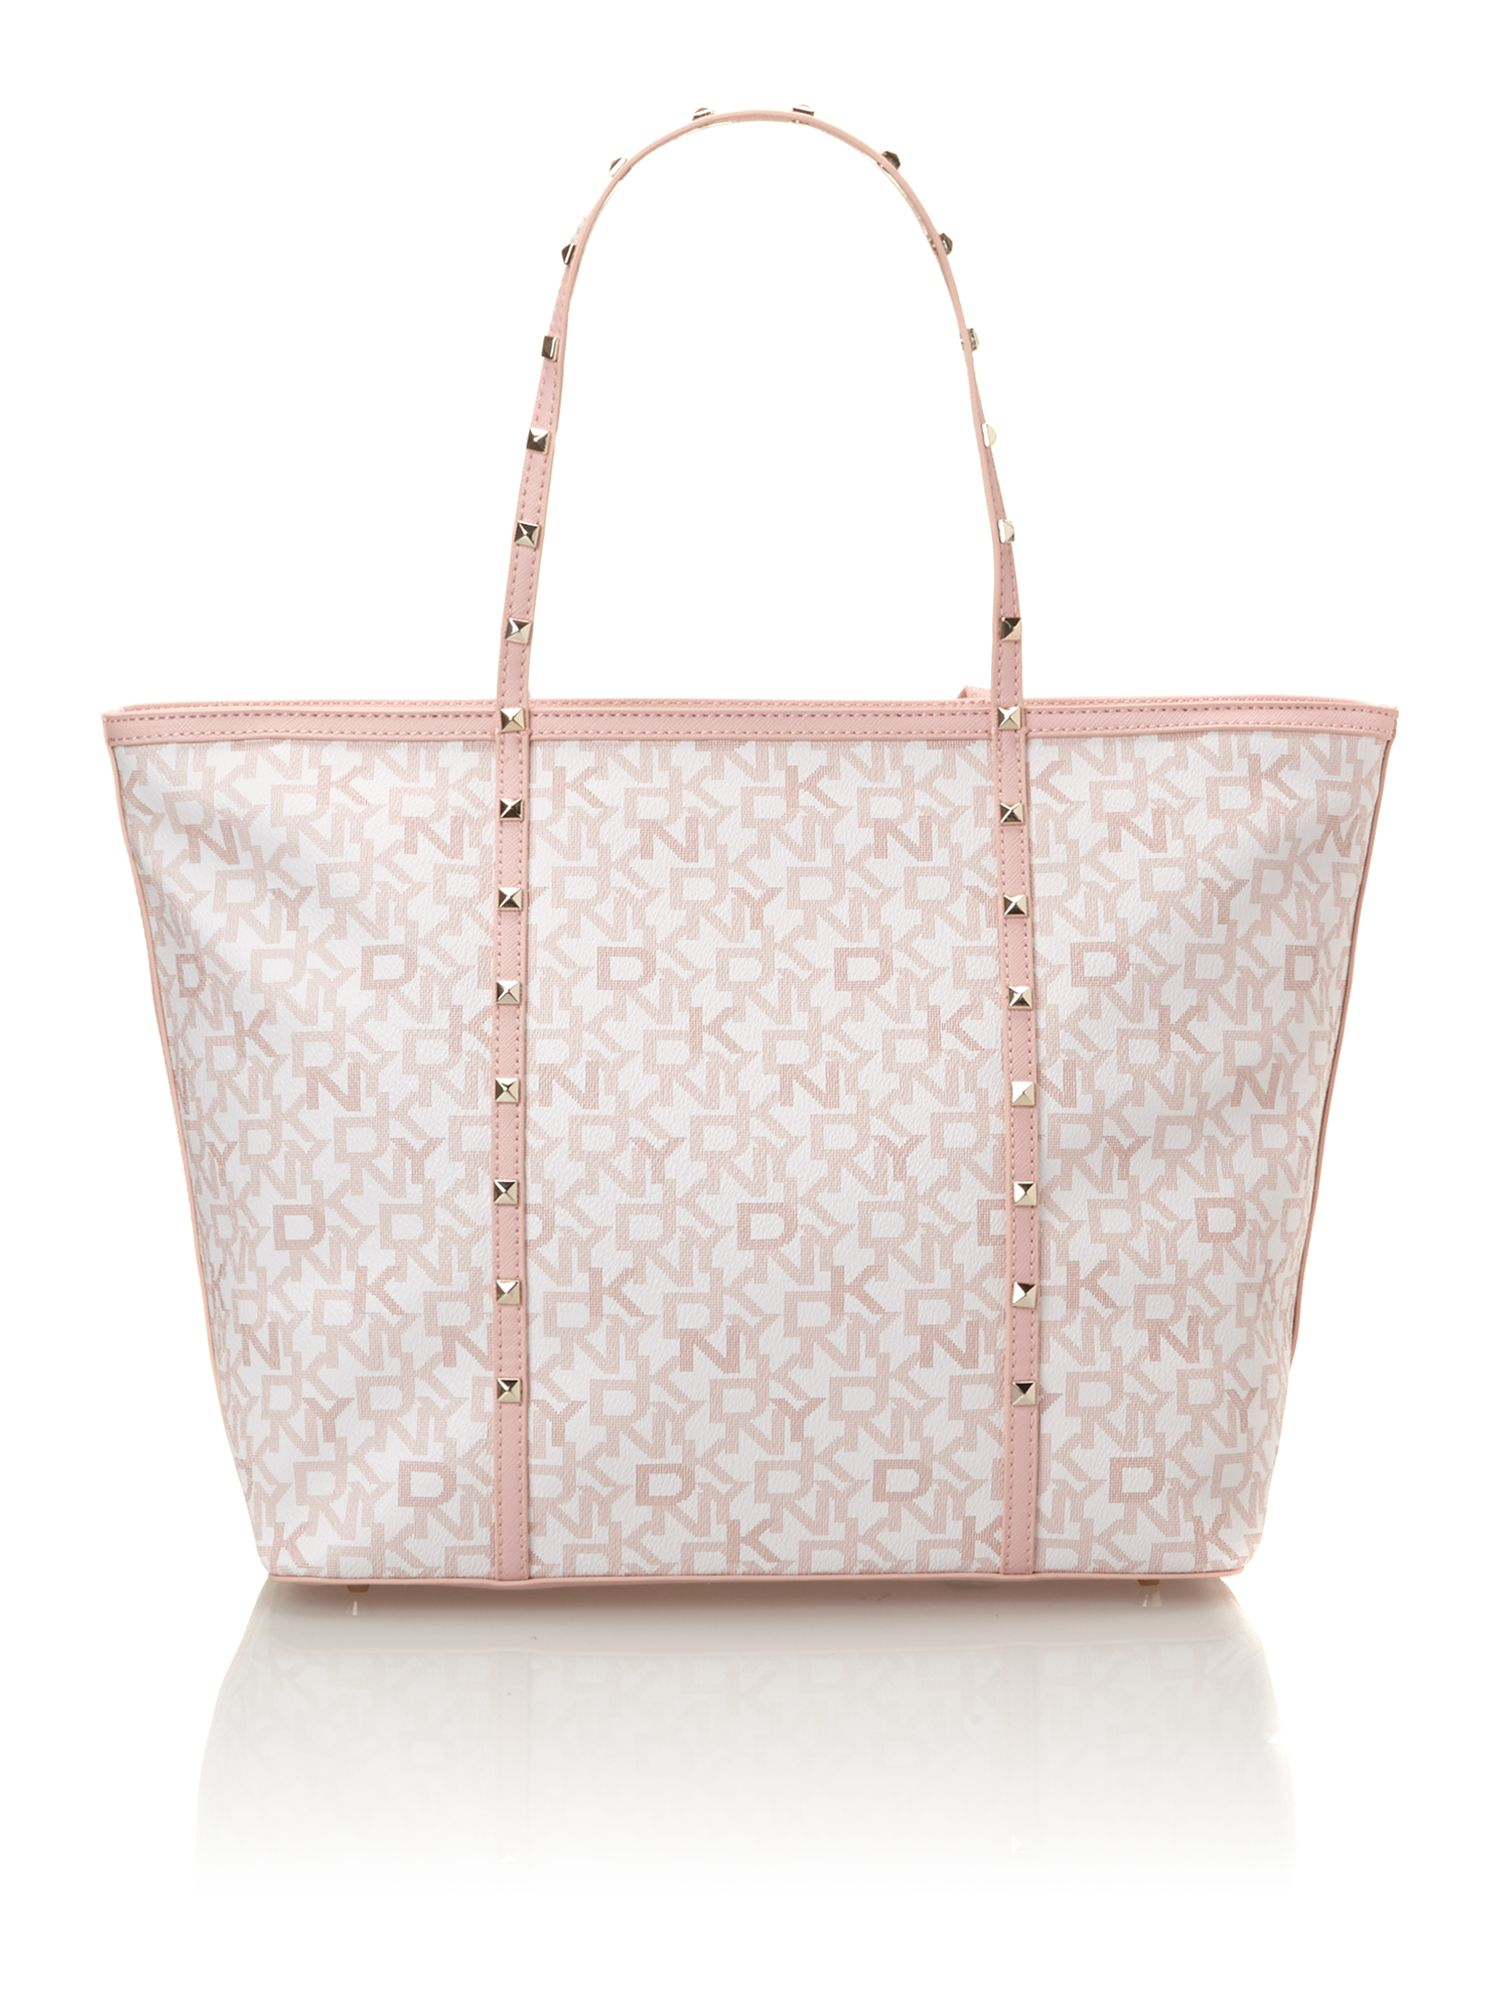 Coated logo pink large tote bag